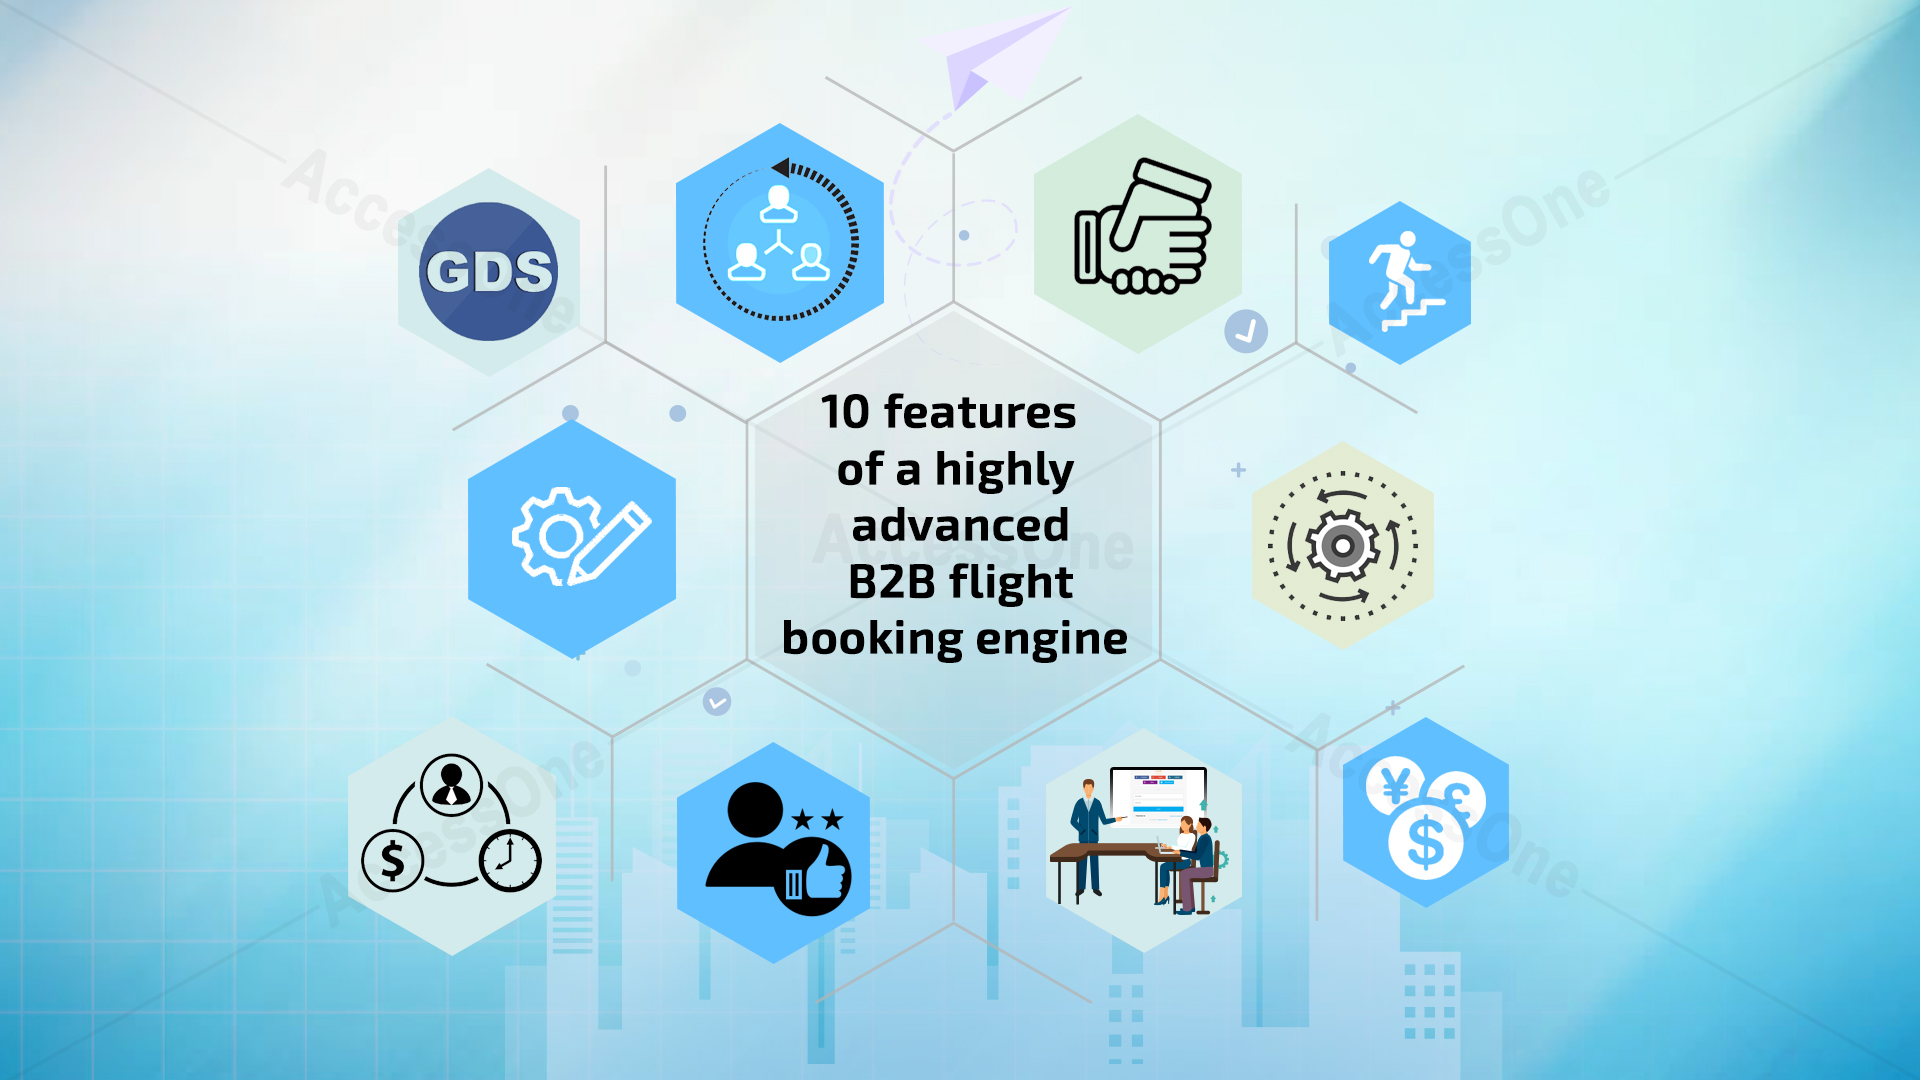 10 features of a highly advanced B2B flight booking engine